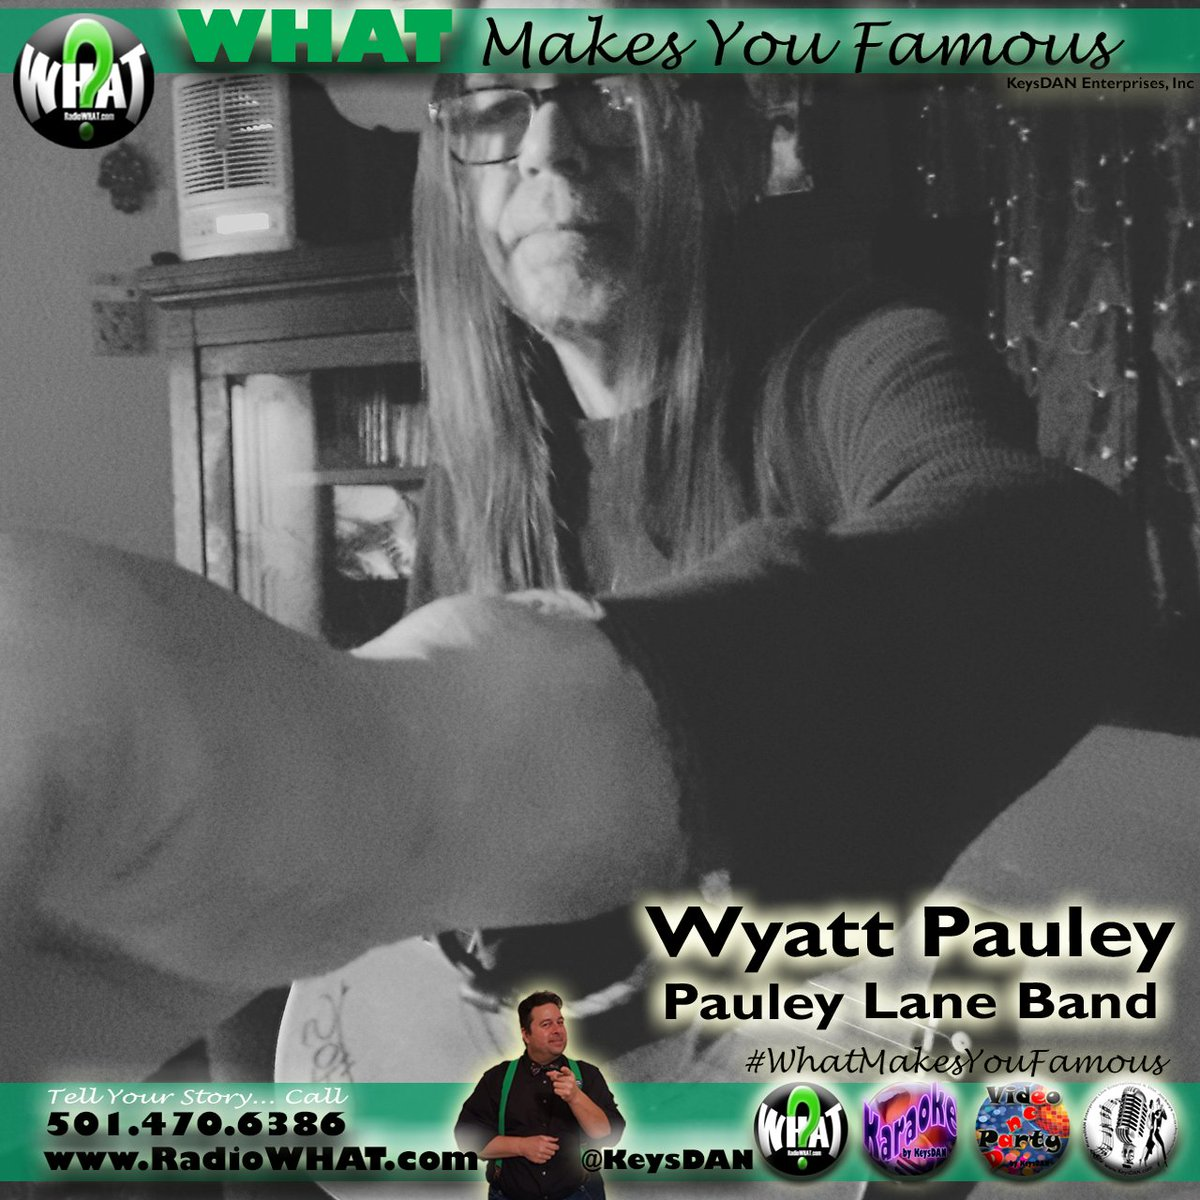 2020-07-06 Wyatt Pauley Pauley Lane Band What Makes You Famous #PODCAST #WhatMakesYouFamous @KeysDAN @wyattpauley @pauleylaneband @inexrecords https://anchor.fm/keysdanshow/episodes/Wyatt-Pauley-Pauley-Lane-Band-What-Makes-You-Famous-PODCAST-WhatMakesYouFamous-KeysDAN-egdhj1 … #guitars #guitar #guitarist #music #guitarplayer #guitarporn #musician #guitarsolo #guitarsofinstagram pic.twitter.com/23VjLVC44P